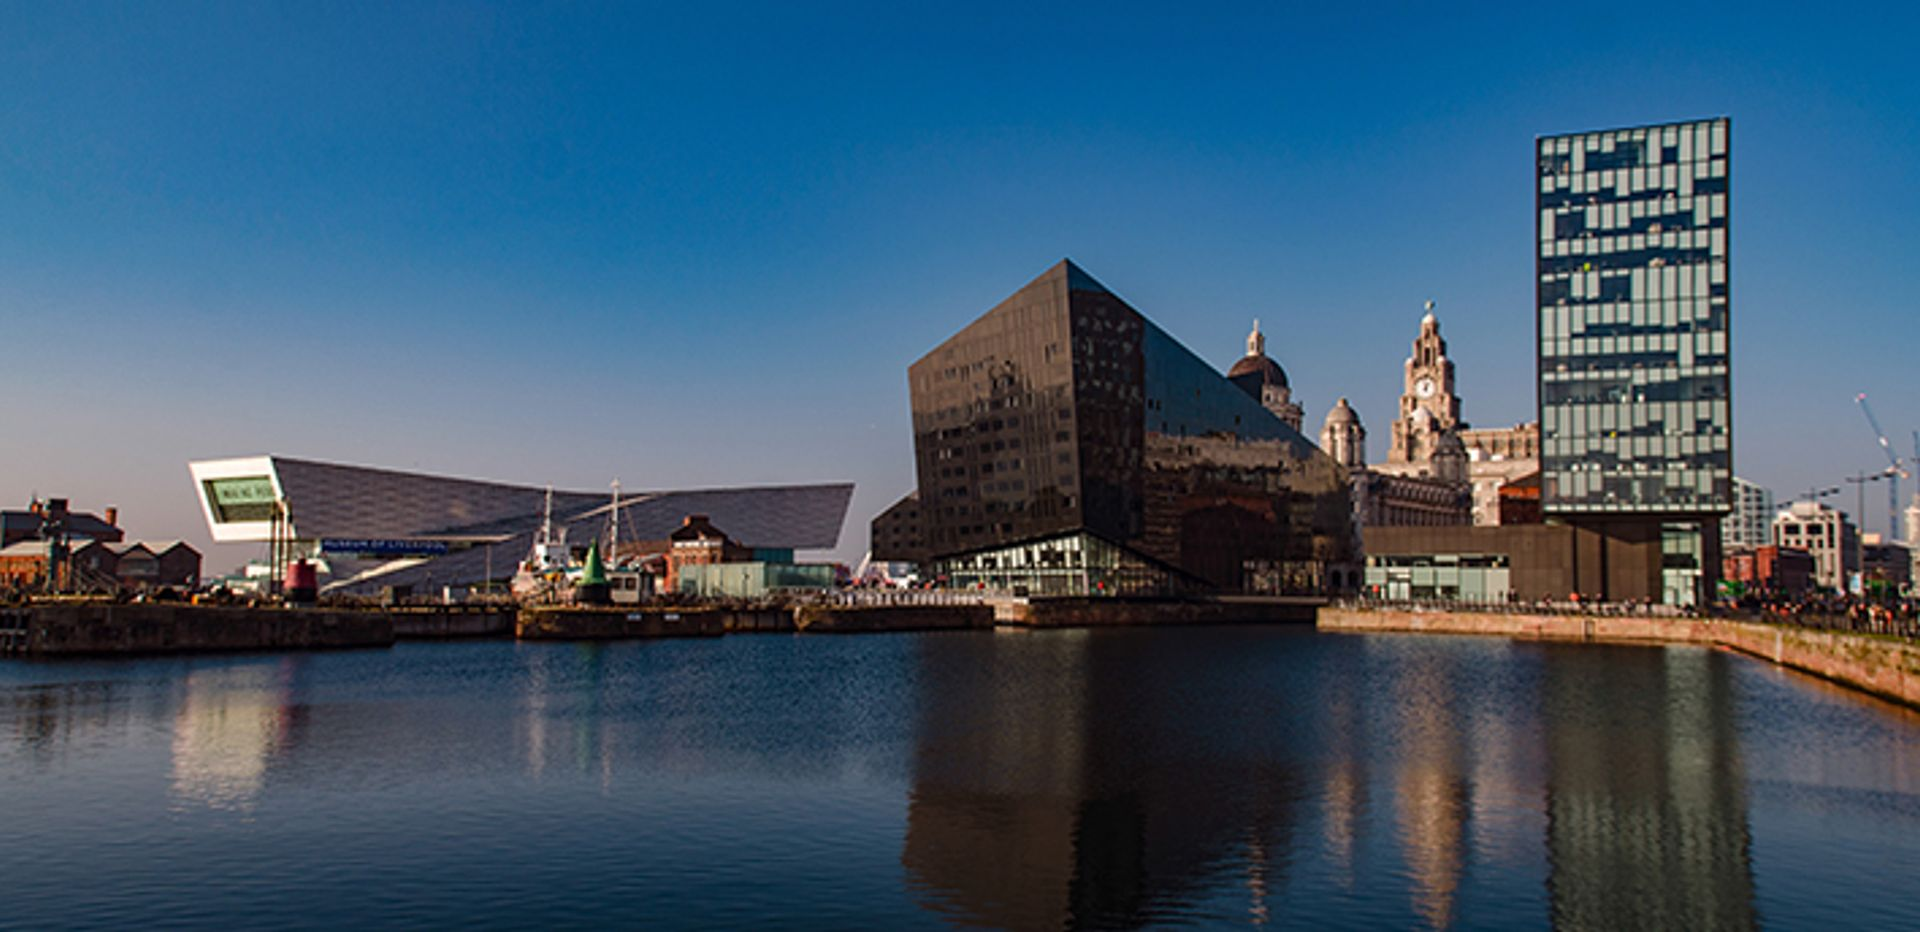 Large-scale redevelopments of the docklands contributed to the loss of status © Atanas Paskalev